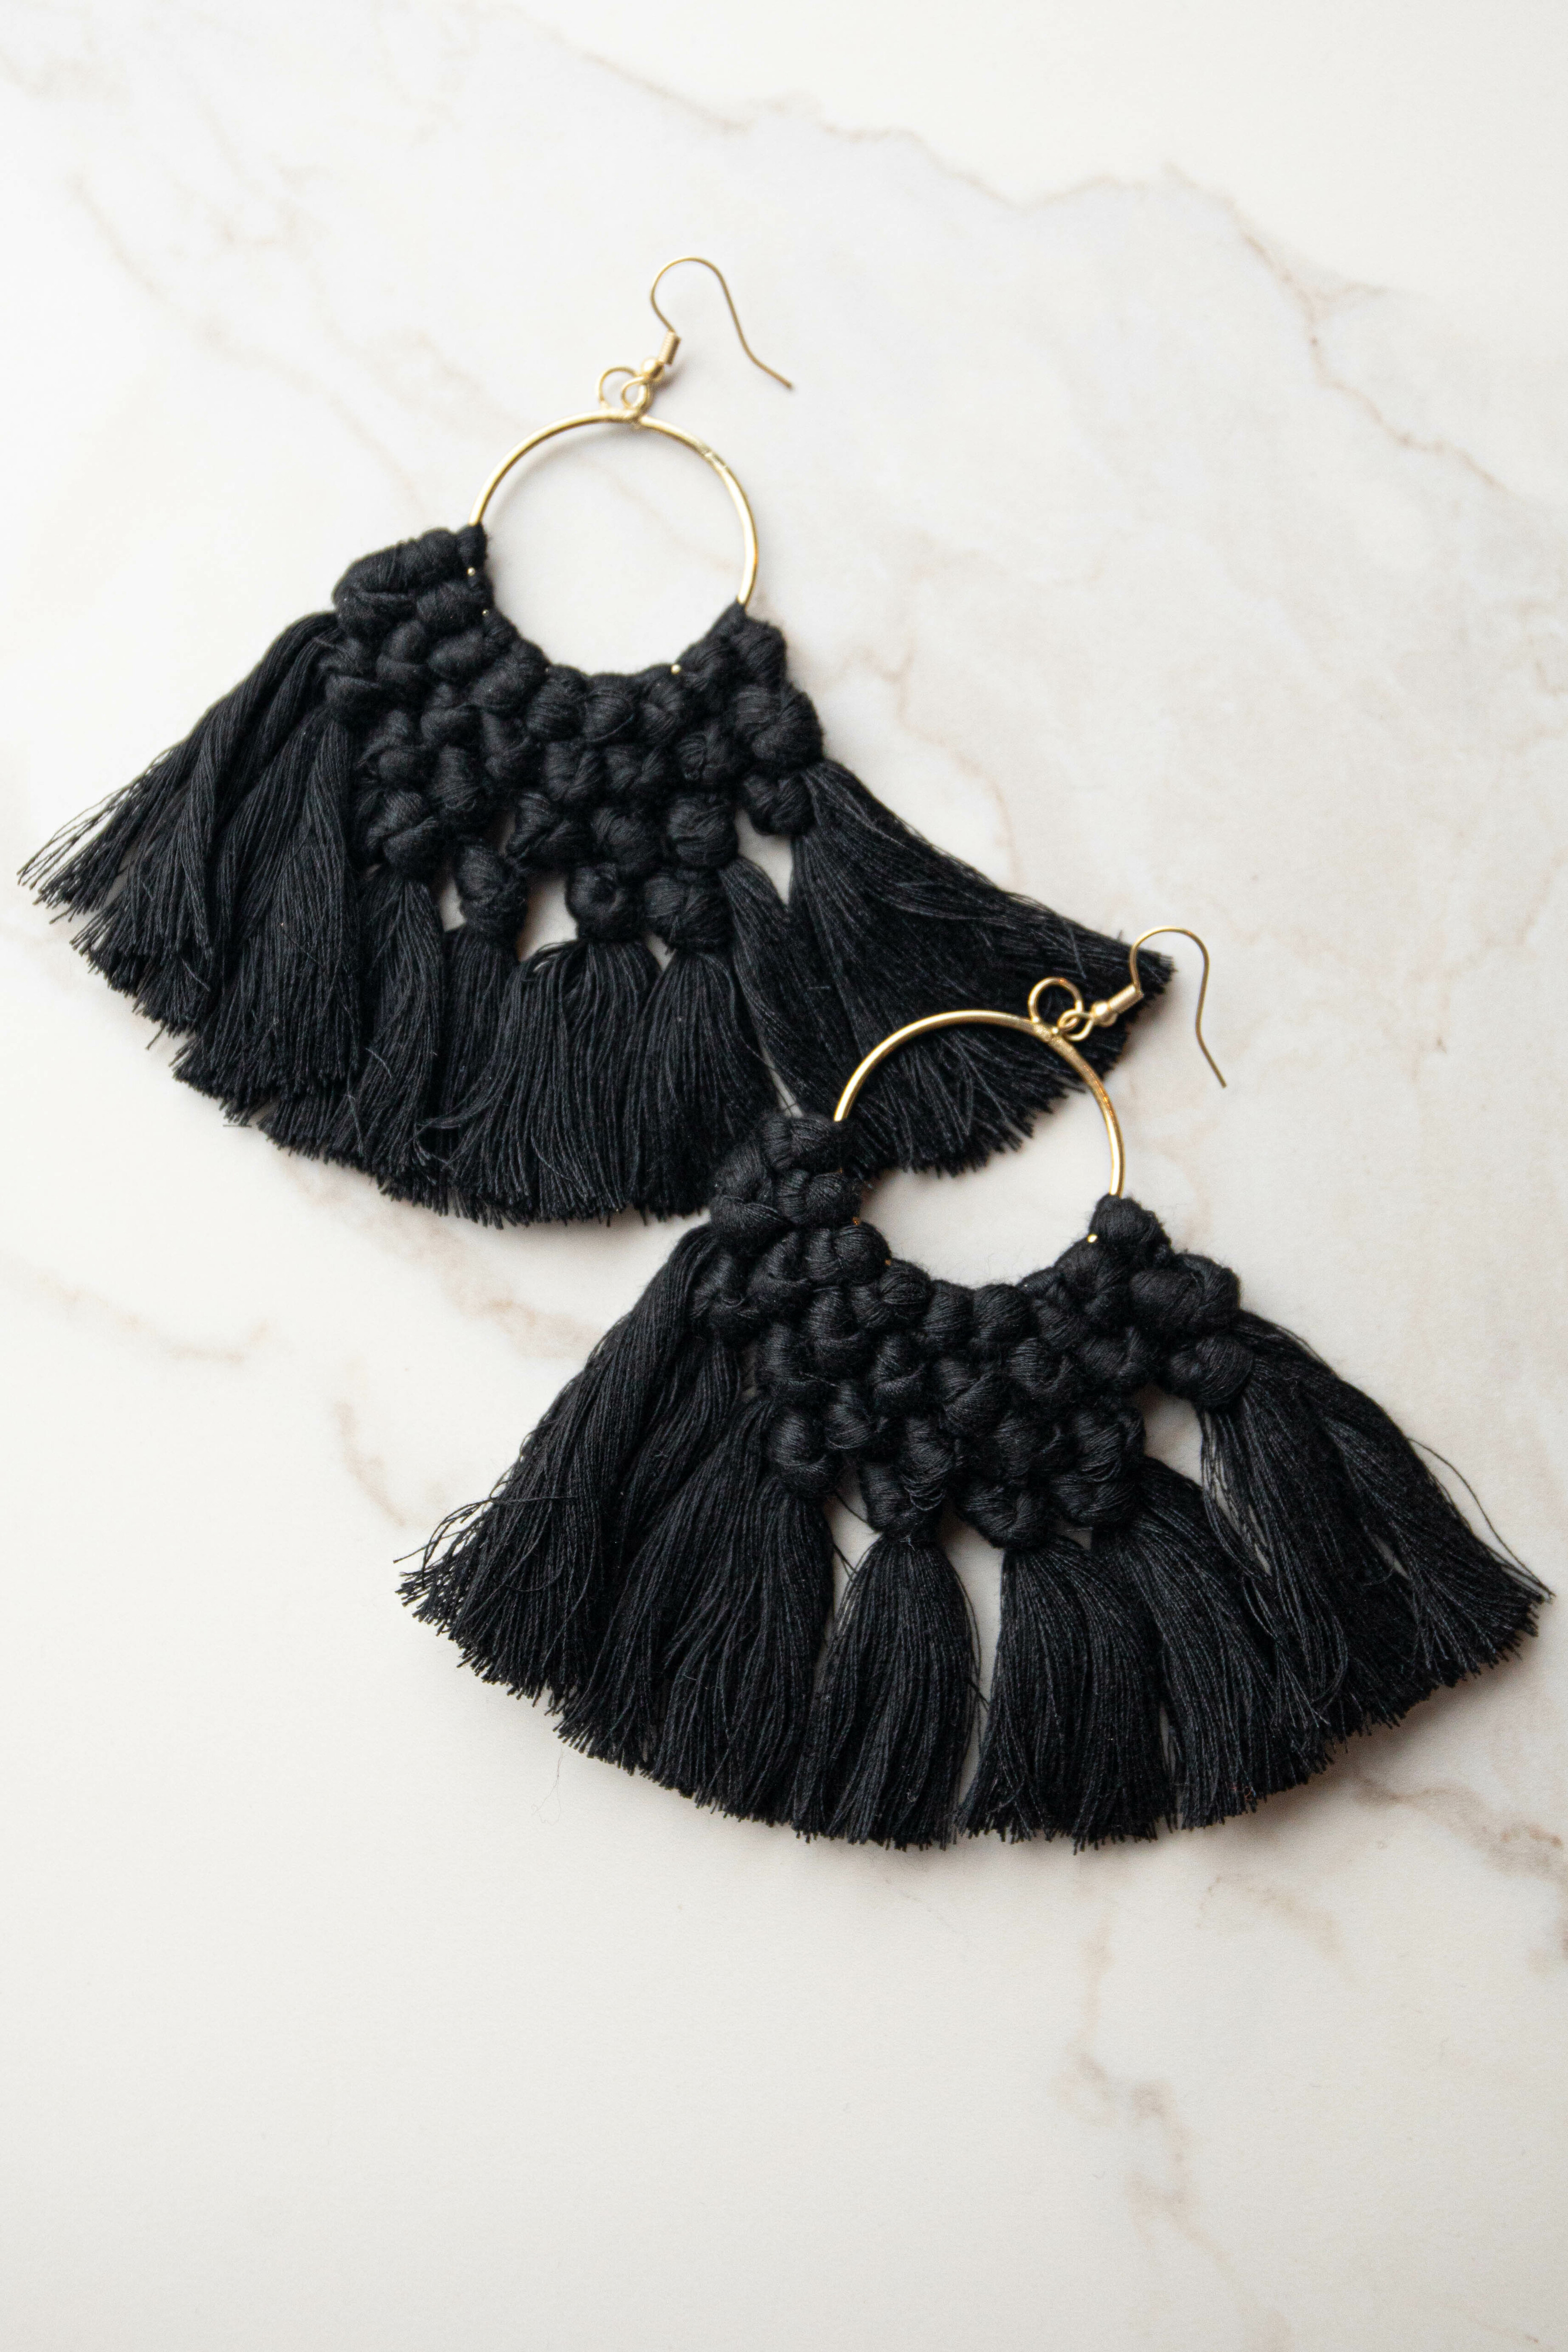 Gold Hoop Earrings with Black Tassels and Woven Details